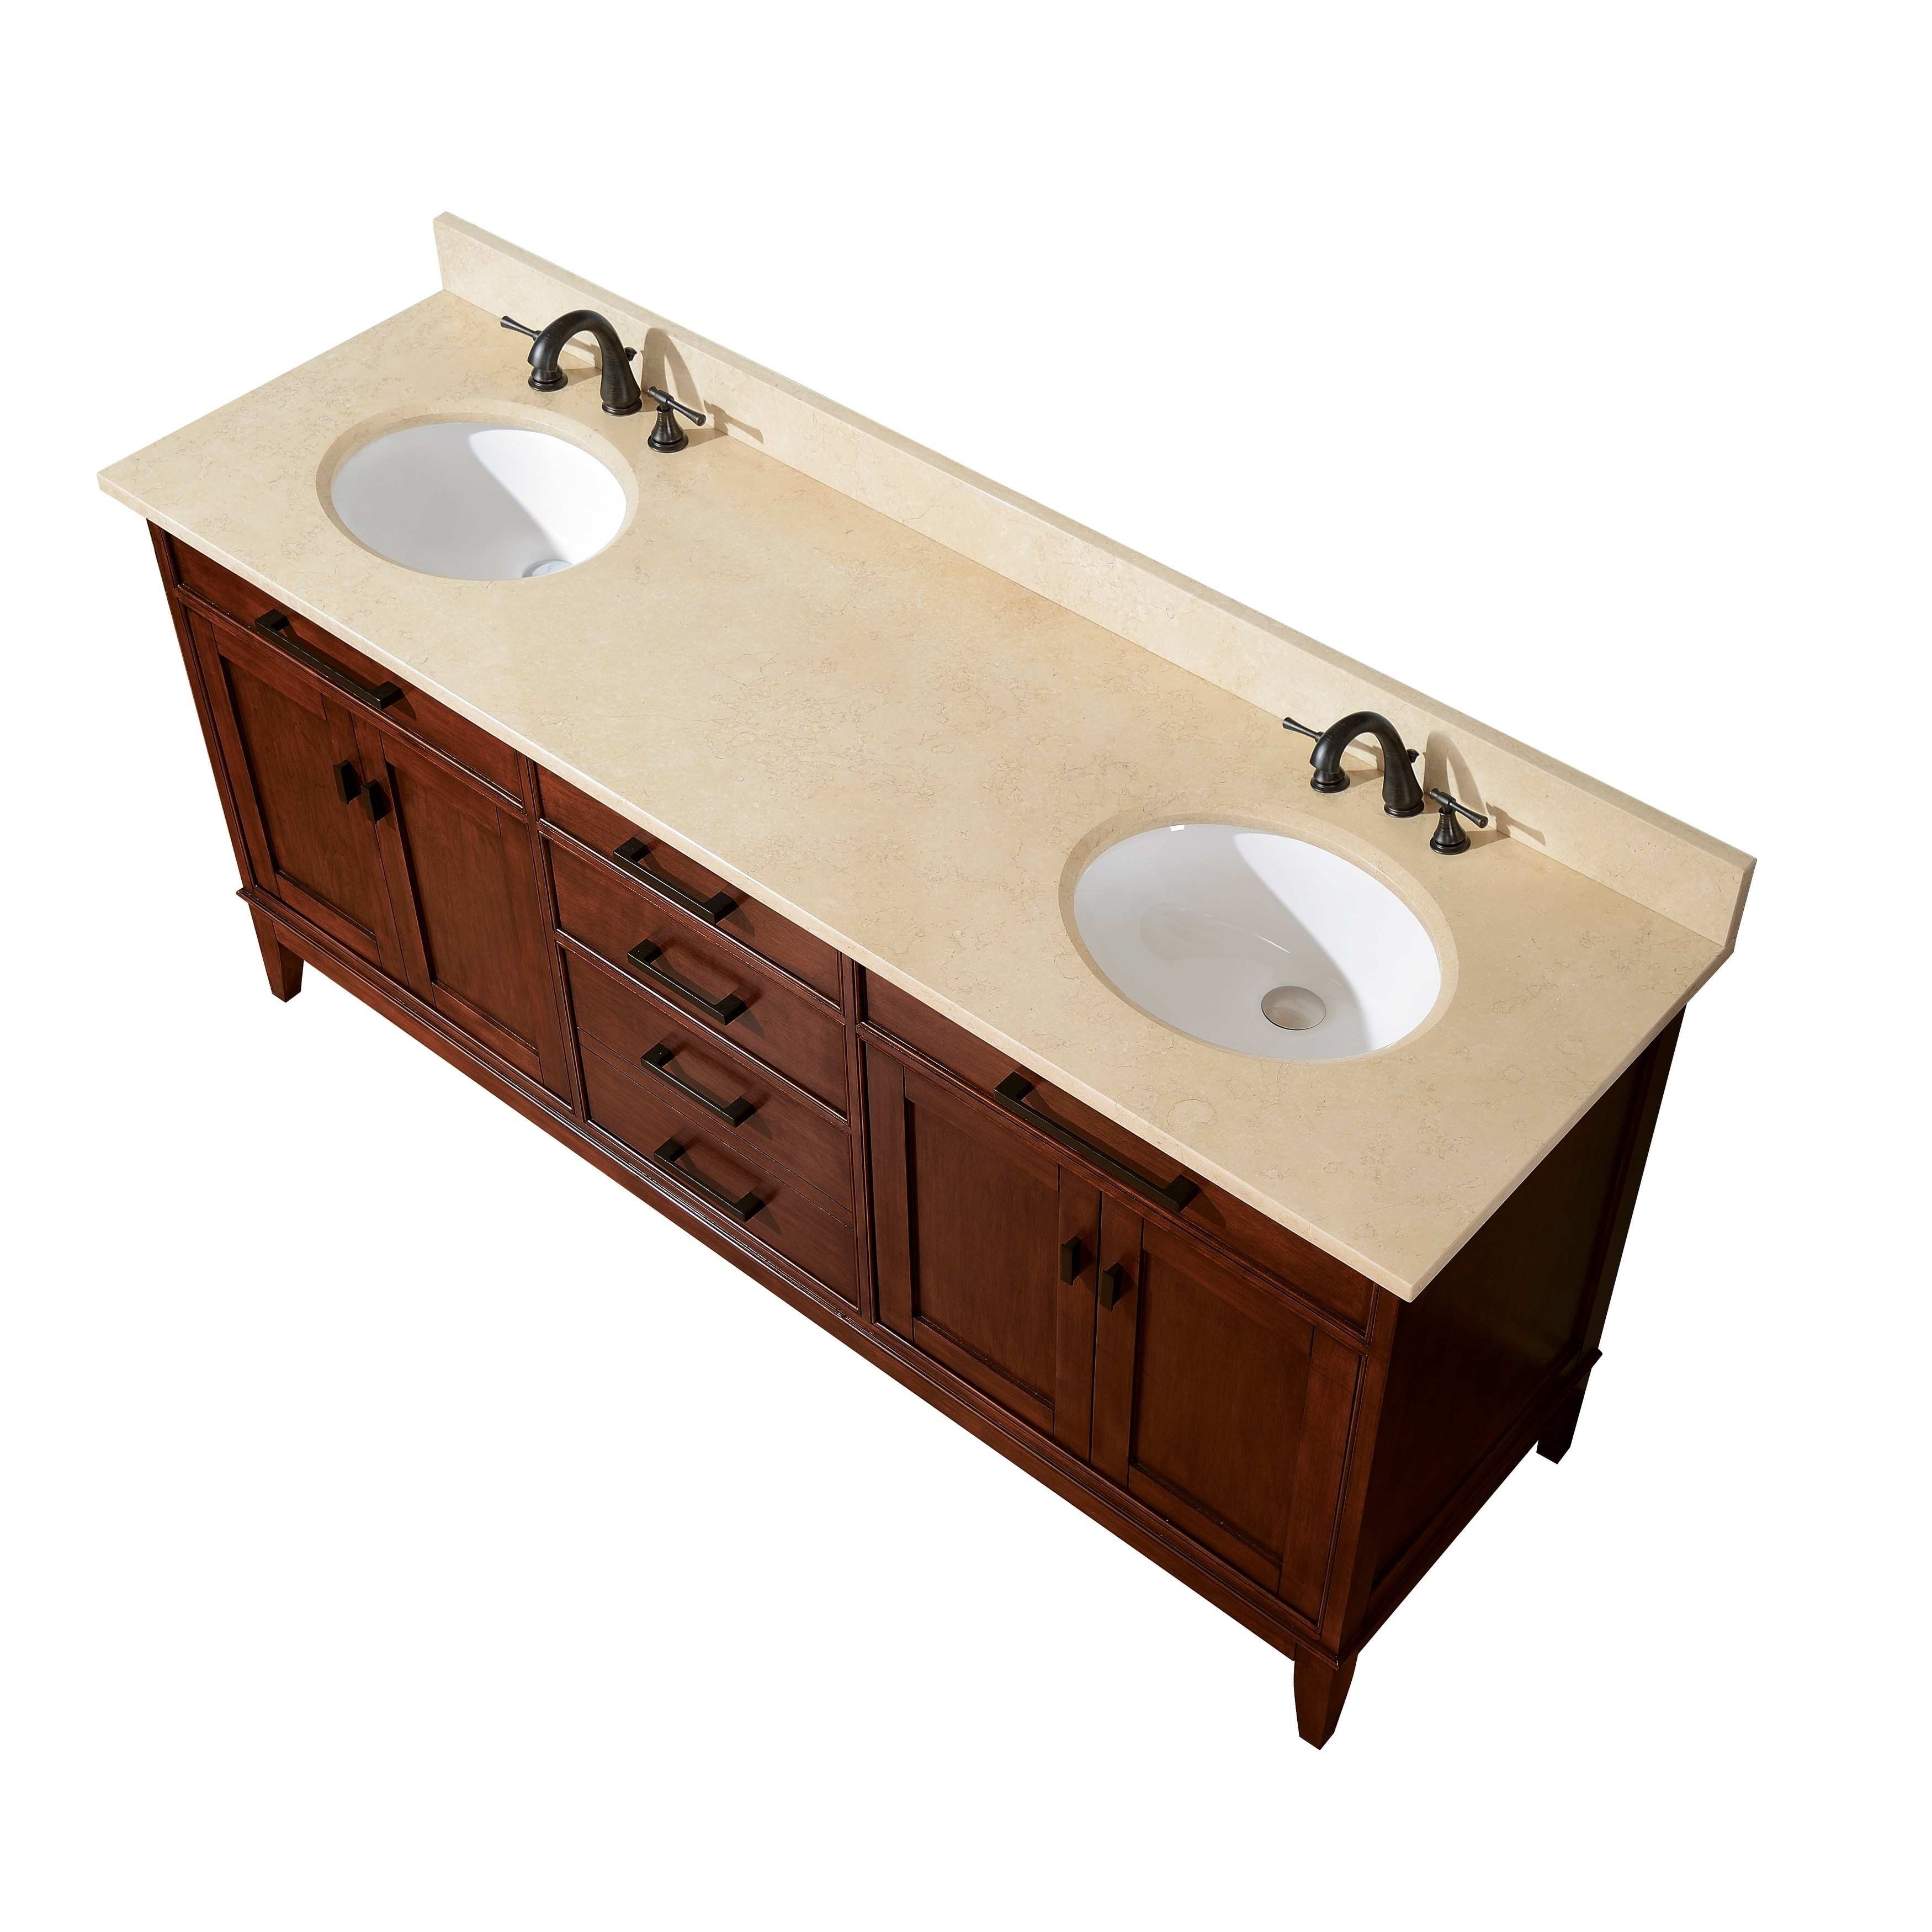 Avanity Madison 72 Inch Double Vanity In Tobacco Finish With Dual Sinks And Top Overstock 8930033 Carrara White Marble Top